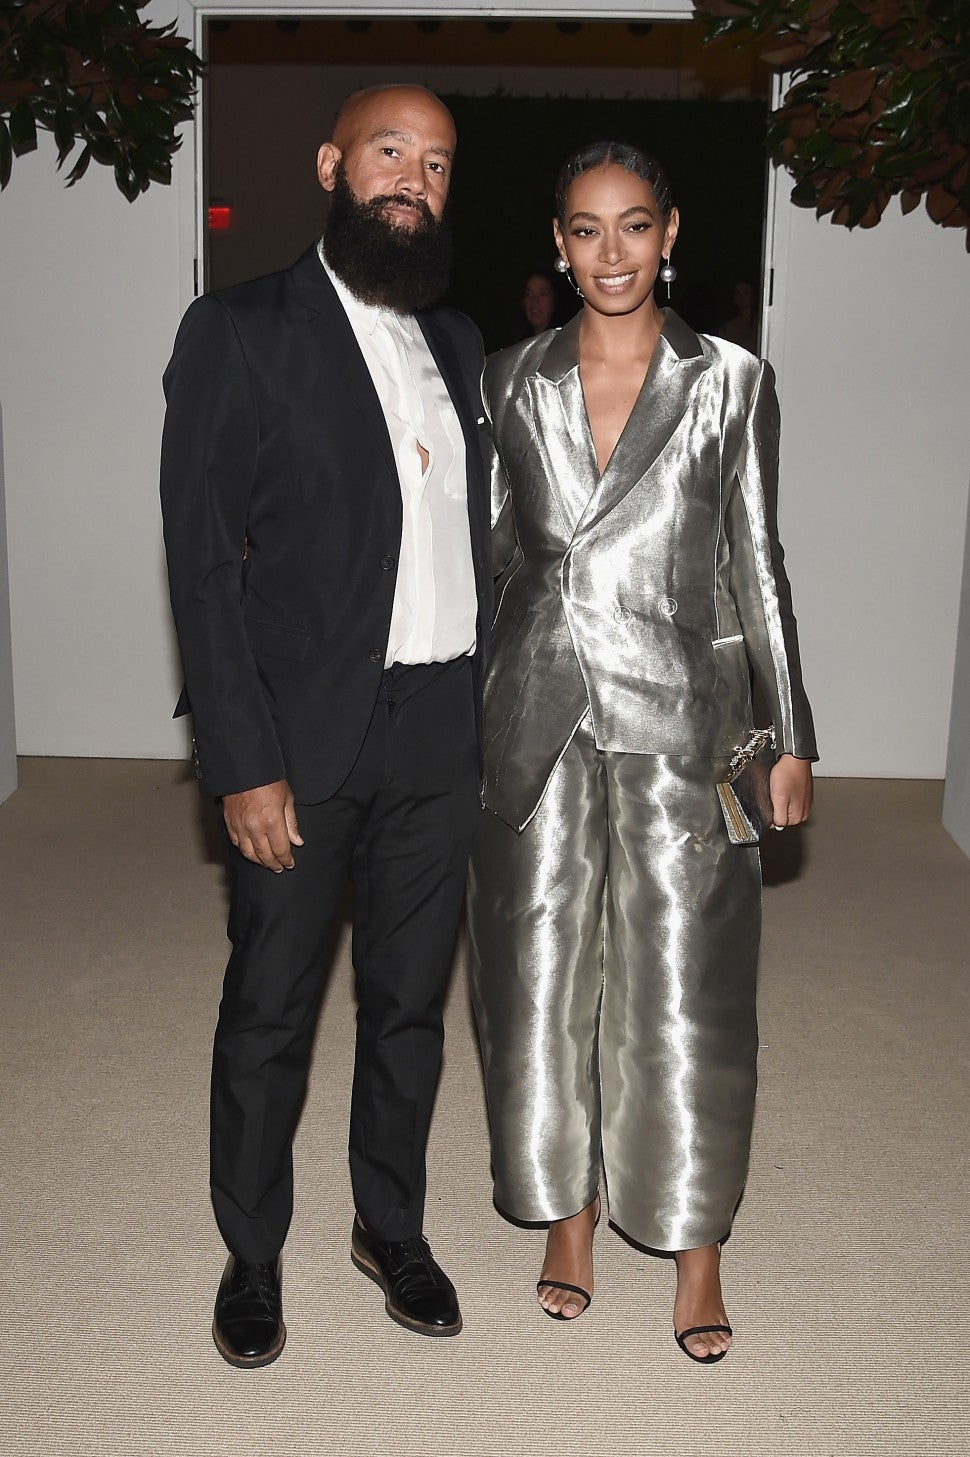 Alan Ferguson and Solange Knowles attend 13th Annual CFDA/Vogue Fashion Fund Awards at Spring Studios on November 7, 2016 in New York City.